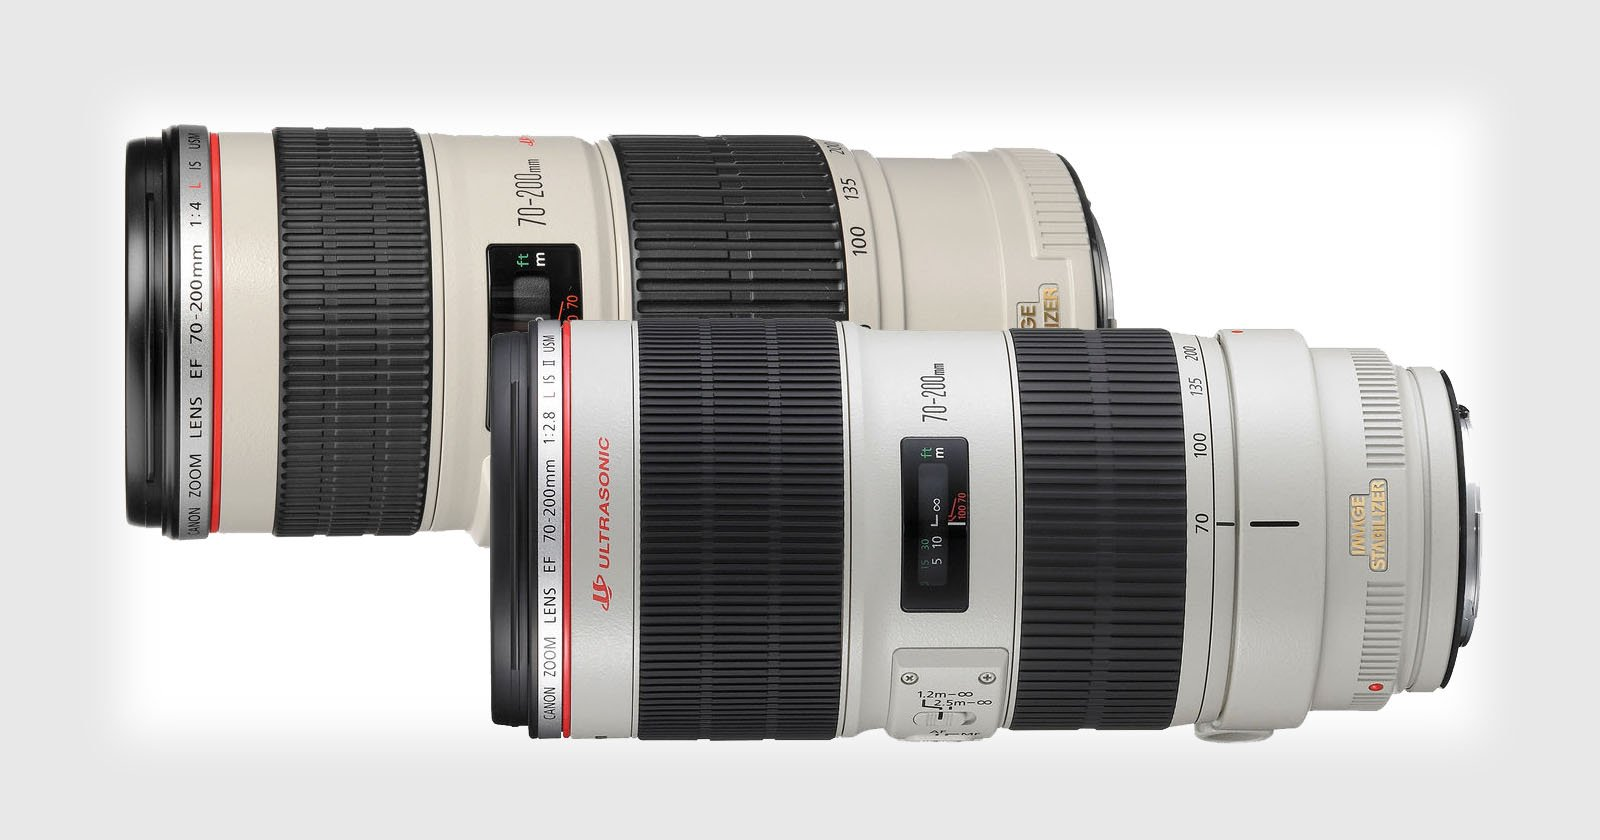 Canon to unveil two new 70-200mm lenses next month: Report: https://t.co/XEpqivdptH https://t.co/cIFMmSZnxW